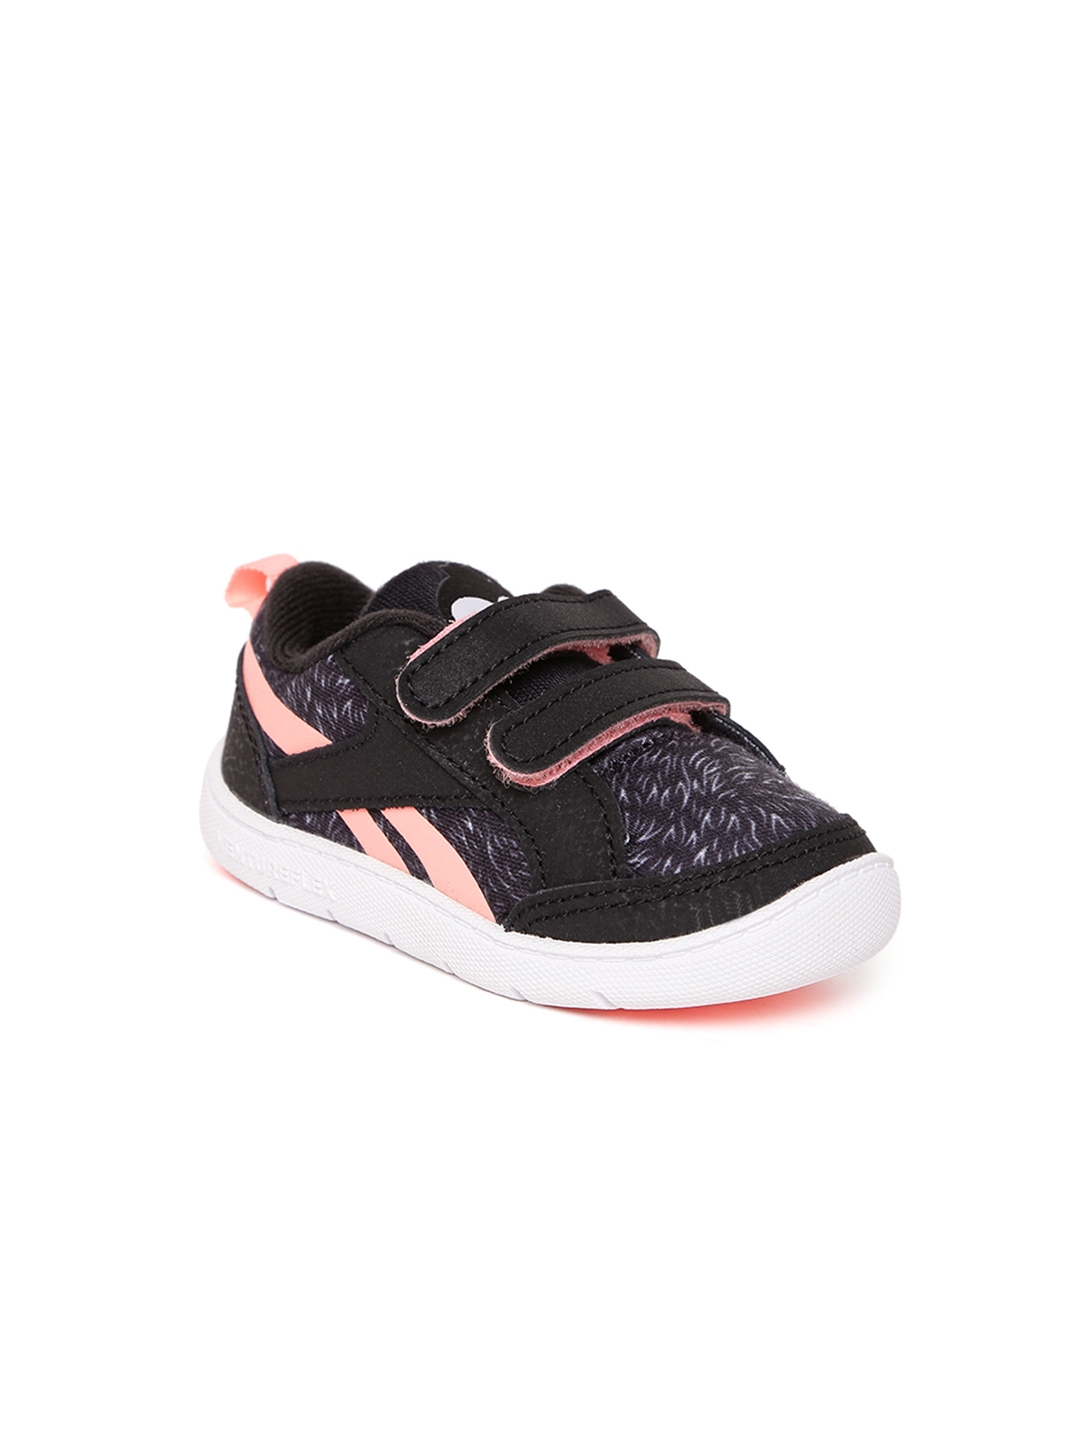 Buy Reebok Classic Kids Black Ventureflex Chase II Sneakers - Casual ... 73bb835e2